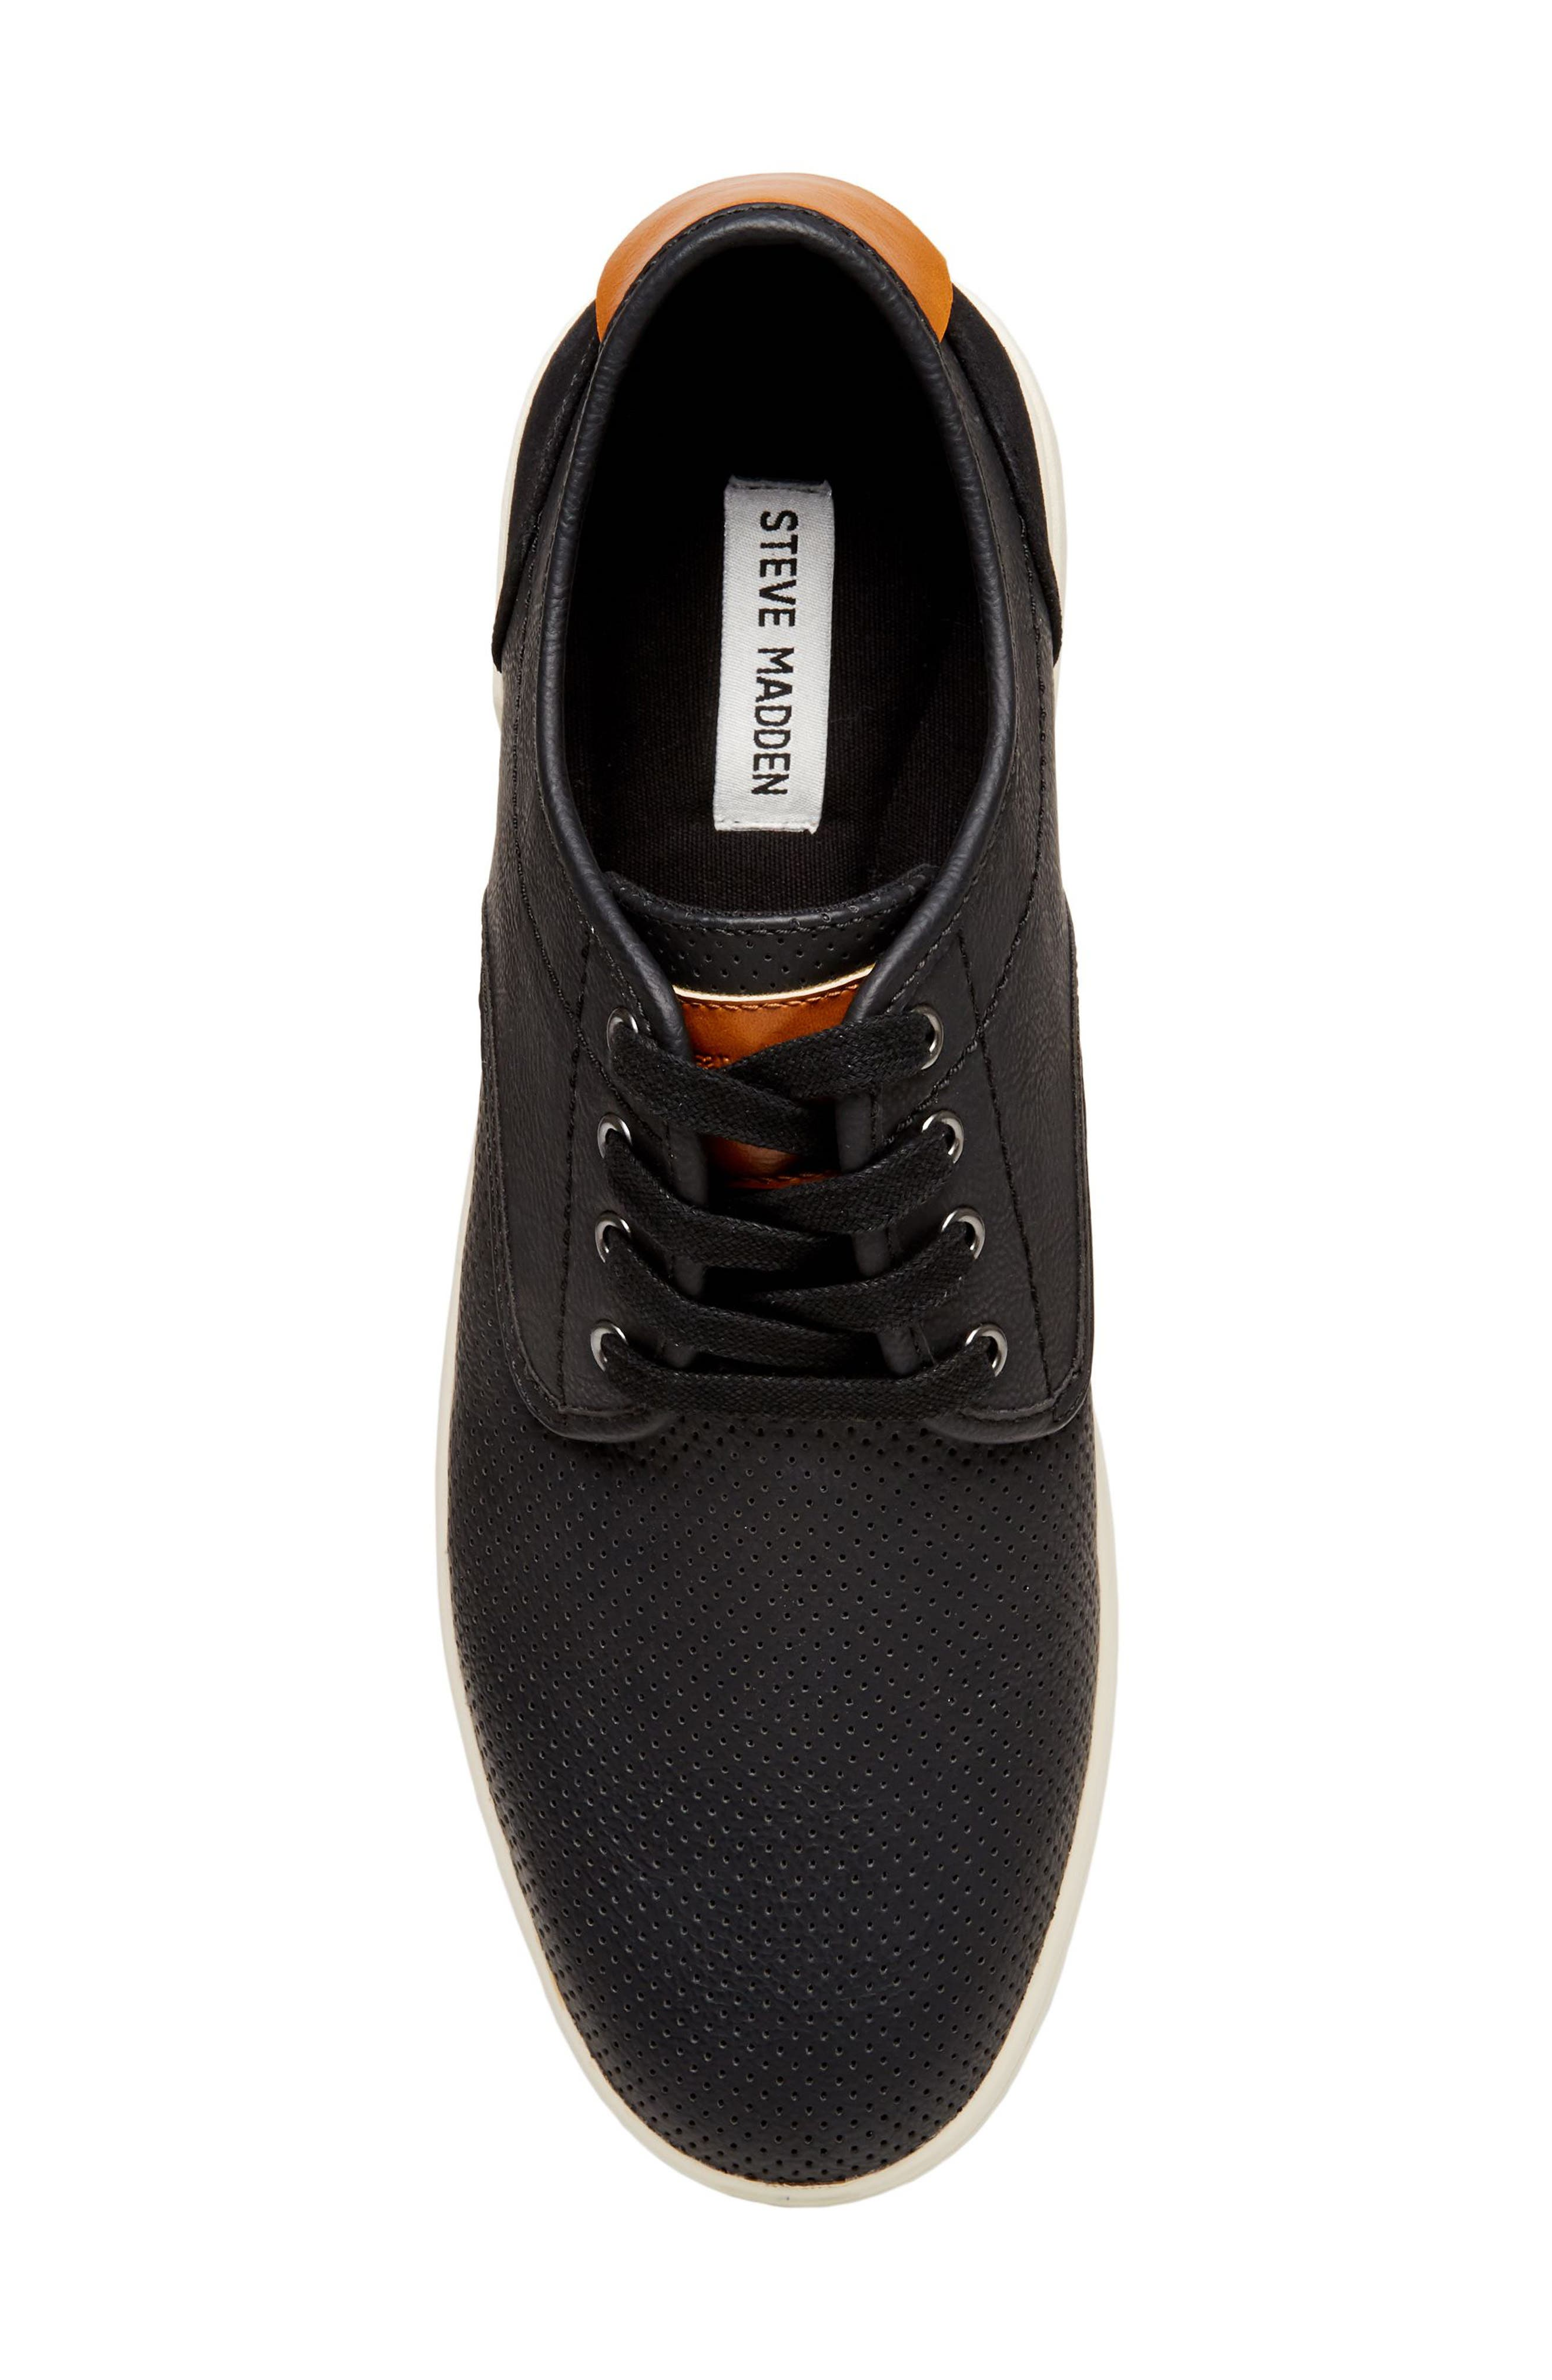 Flyerz Perforated Sneaker,                             Alternate thumbnail 5, color,                             BLACK LEATHER